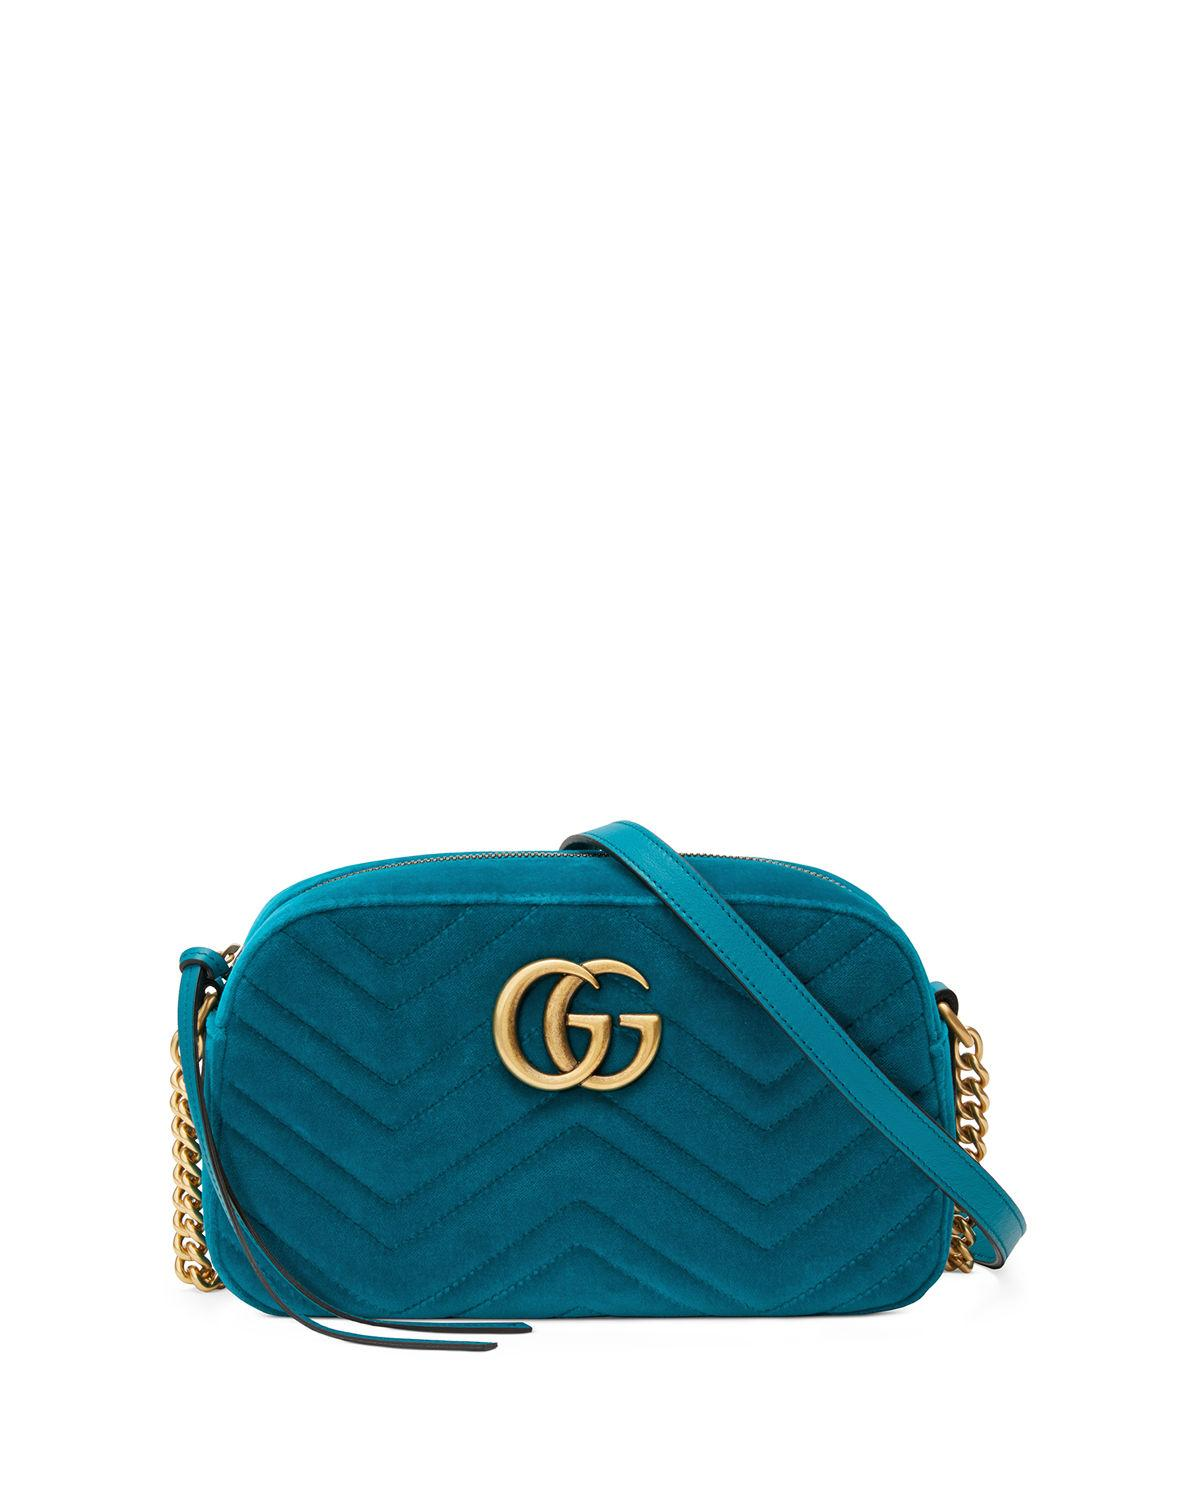 36556bbe92d8 Lyst - Gucci GG Marmont Small Shoulder Bag in Blue - Save 11%